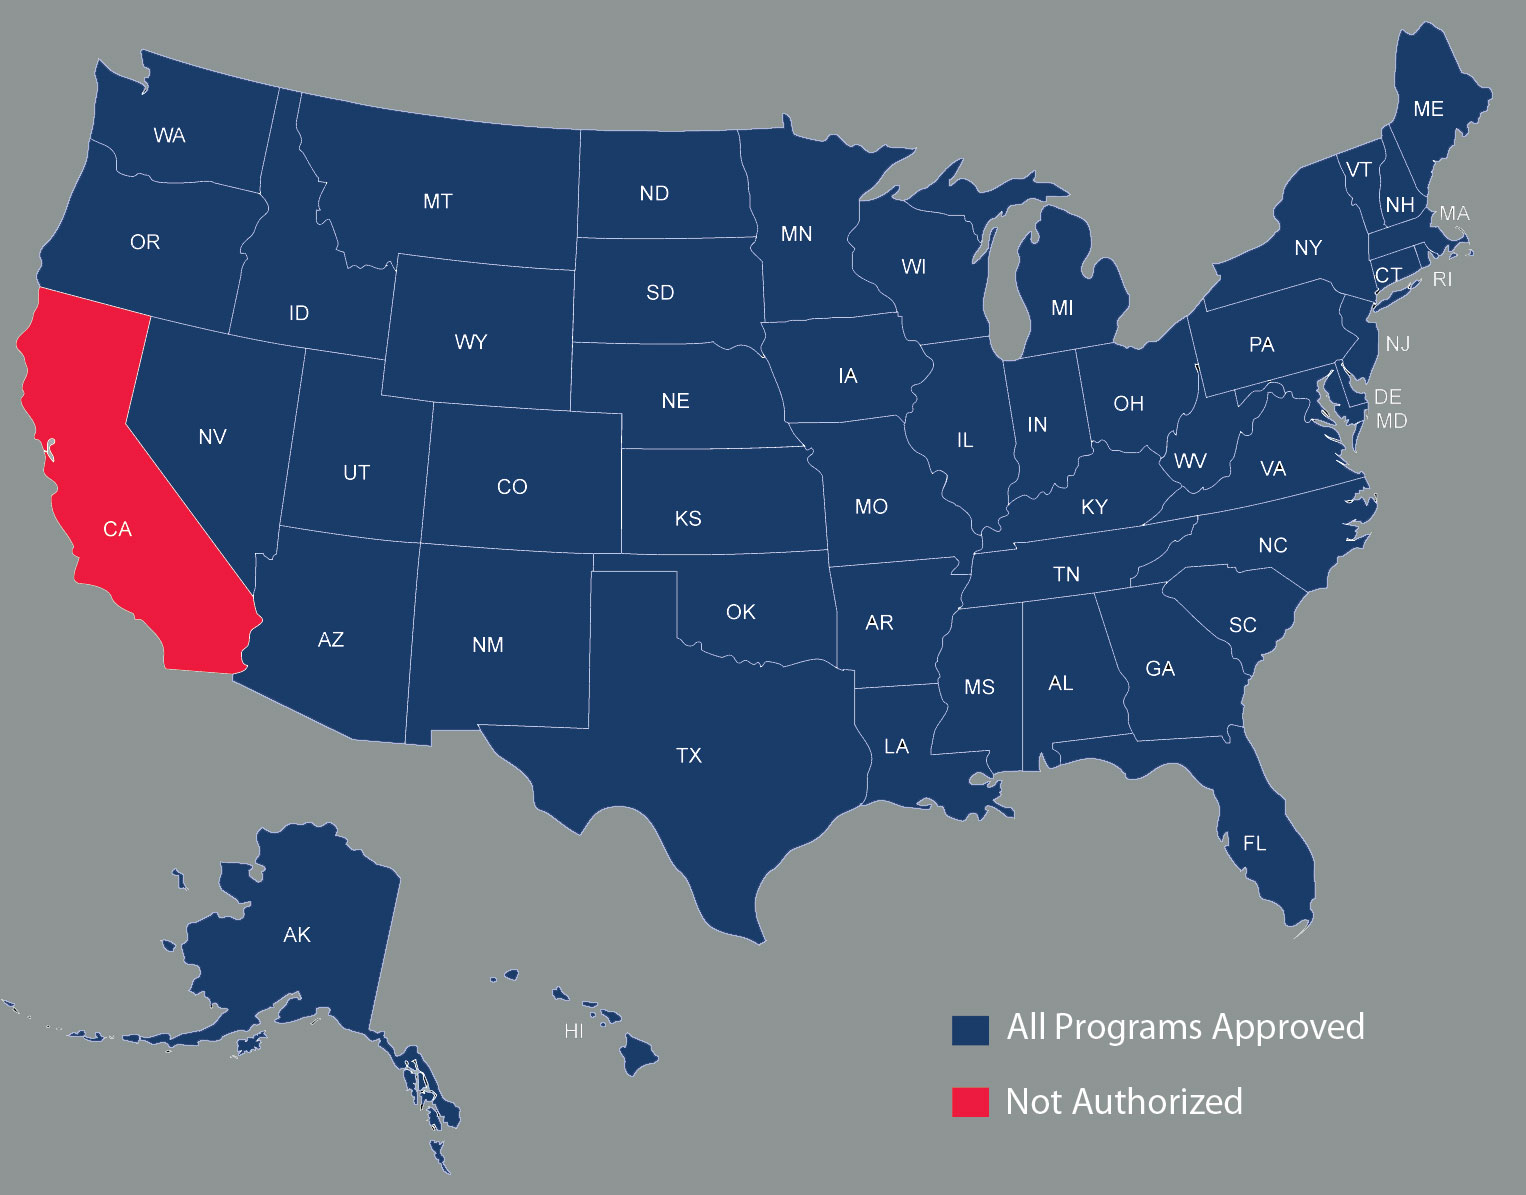 Online Program State Approval Map